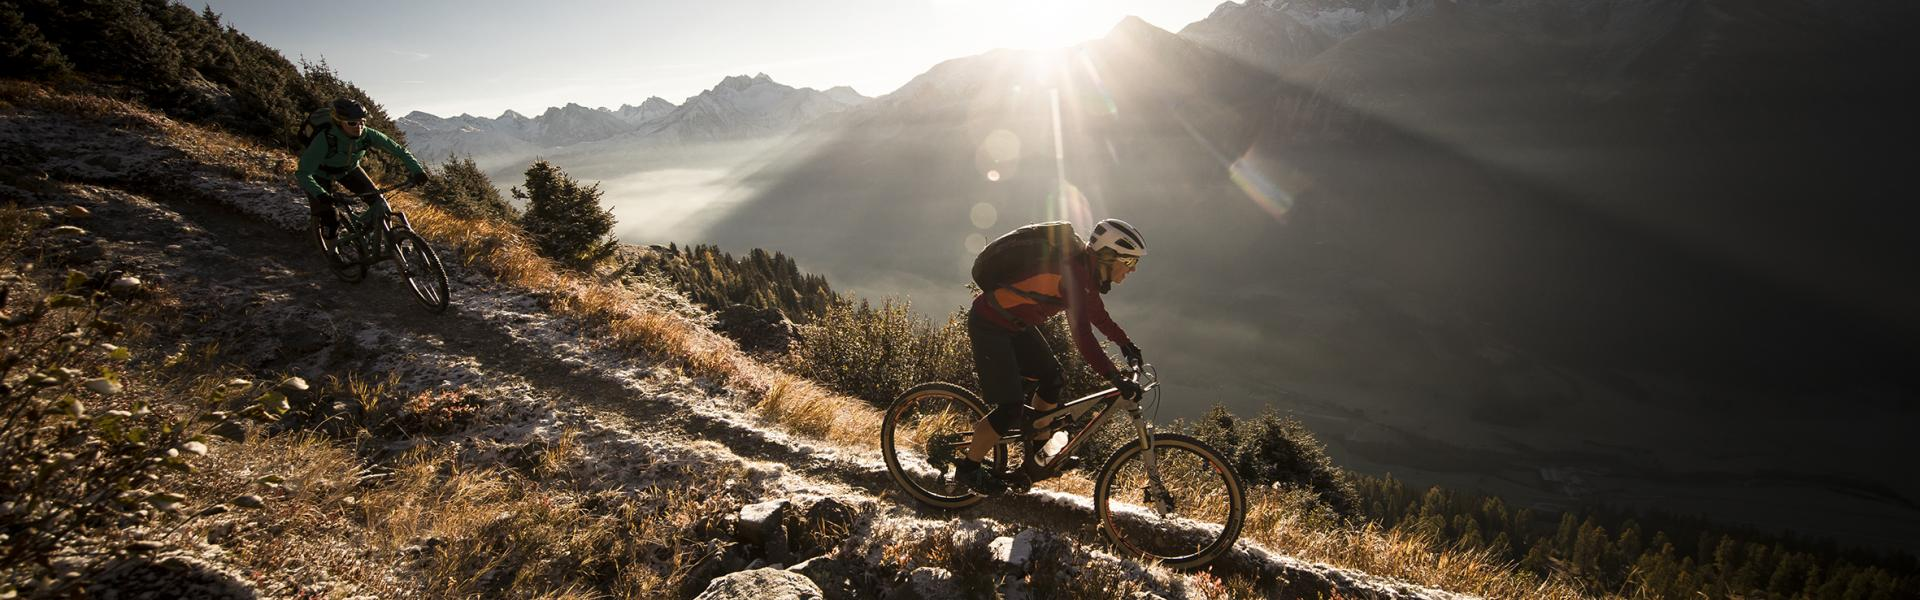 Mountainbiker on the Stoneman Glaciara route, Valais